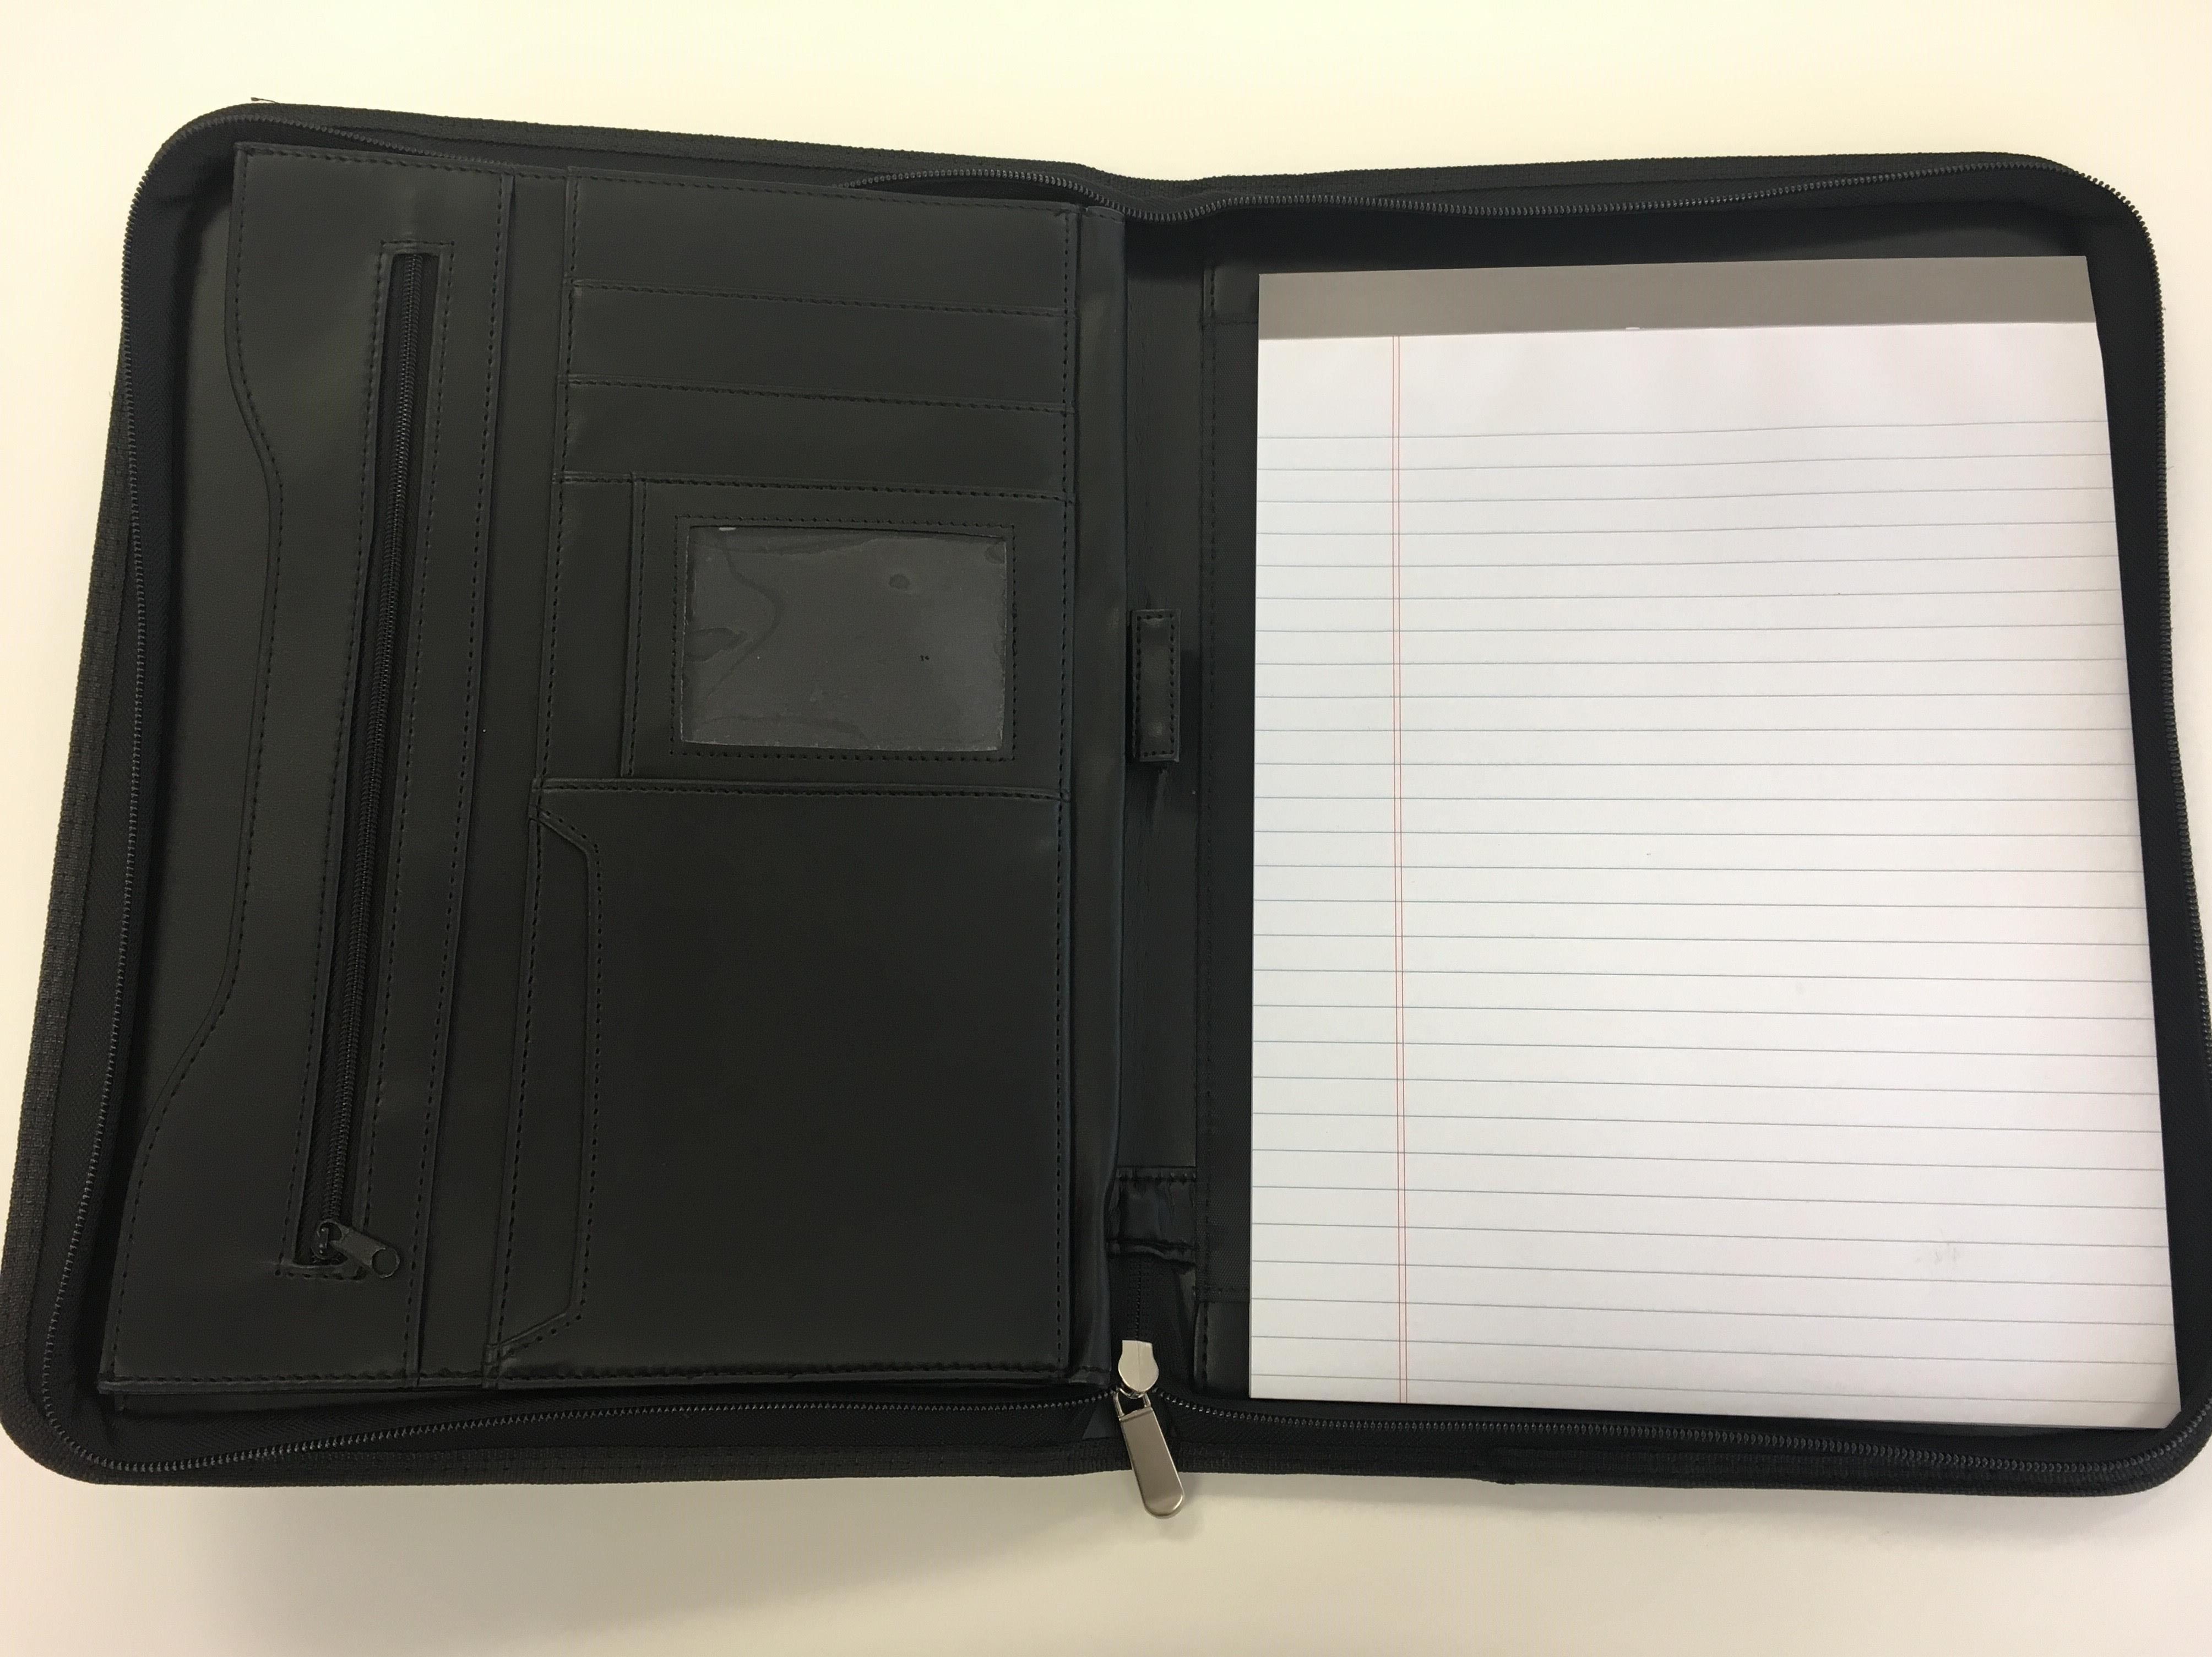 Alternative Image for the Zipper Student Padfolio product